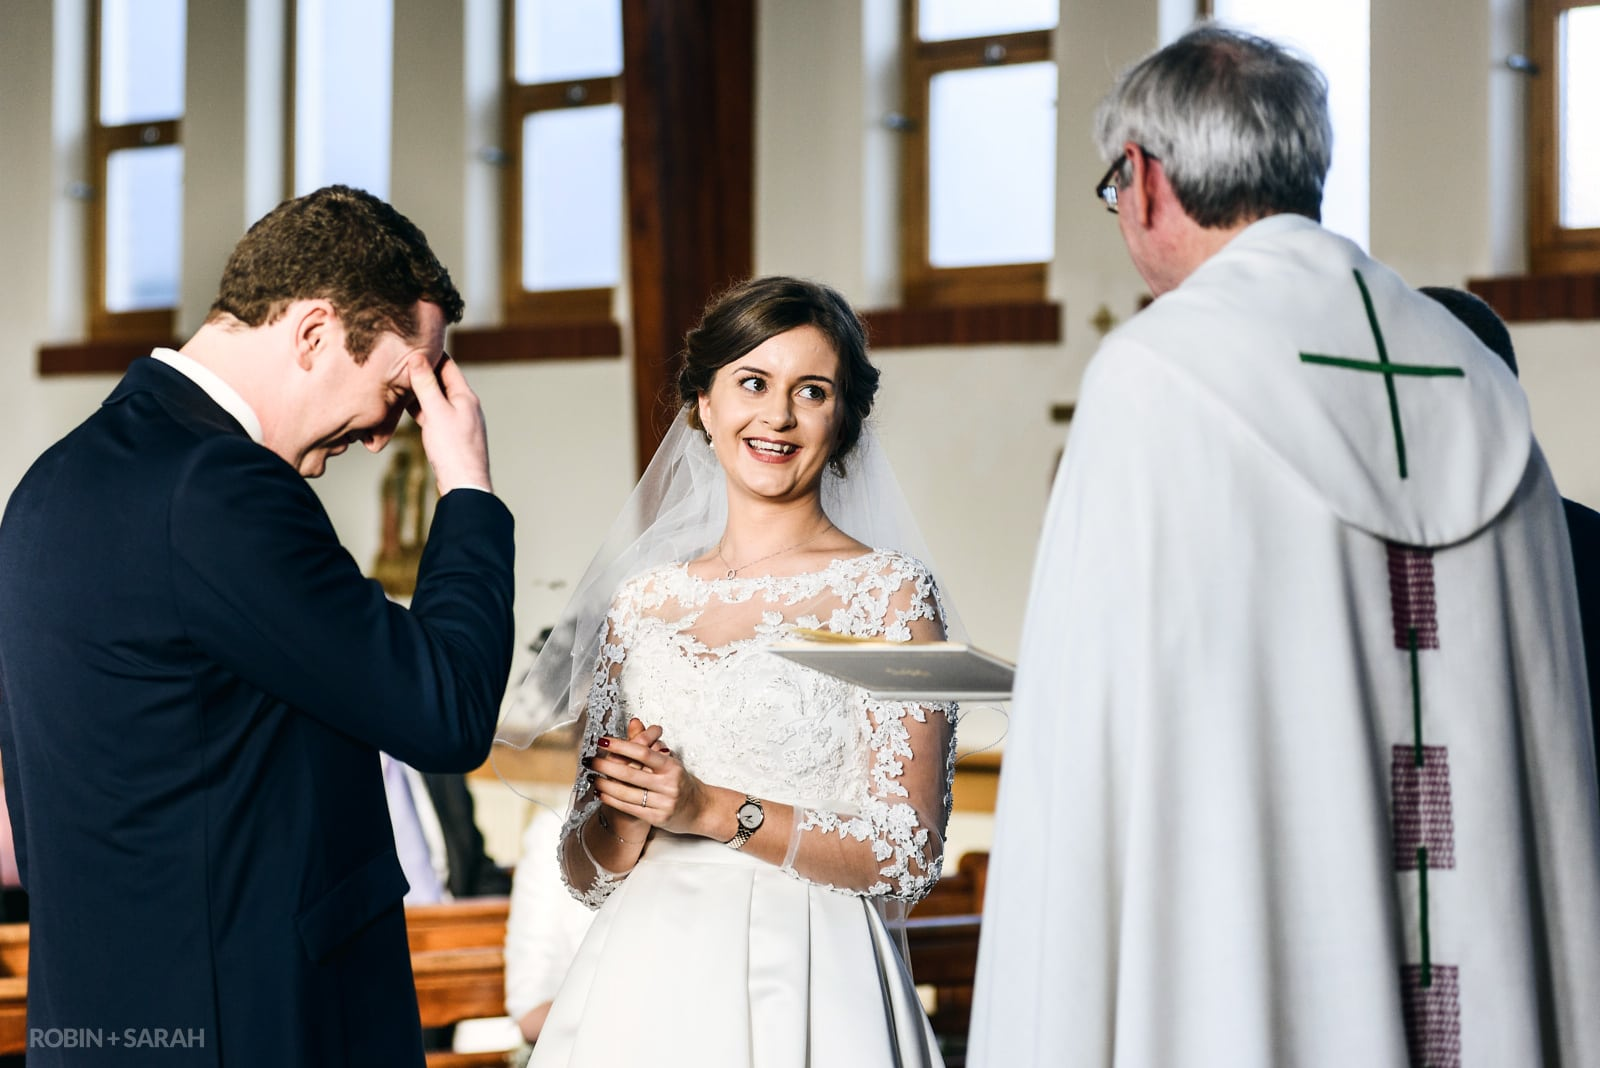 Bride laughing as groom makes mistake during wedding vows in church